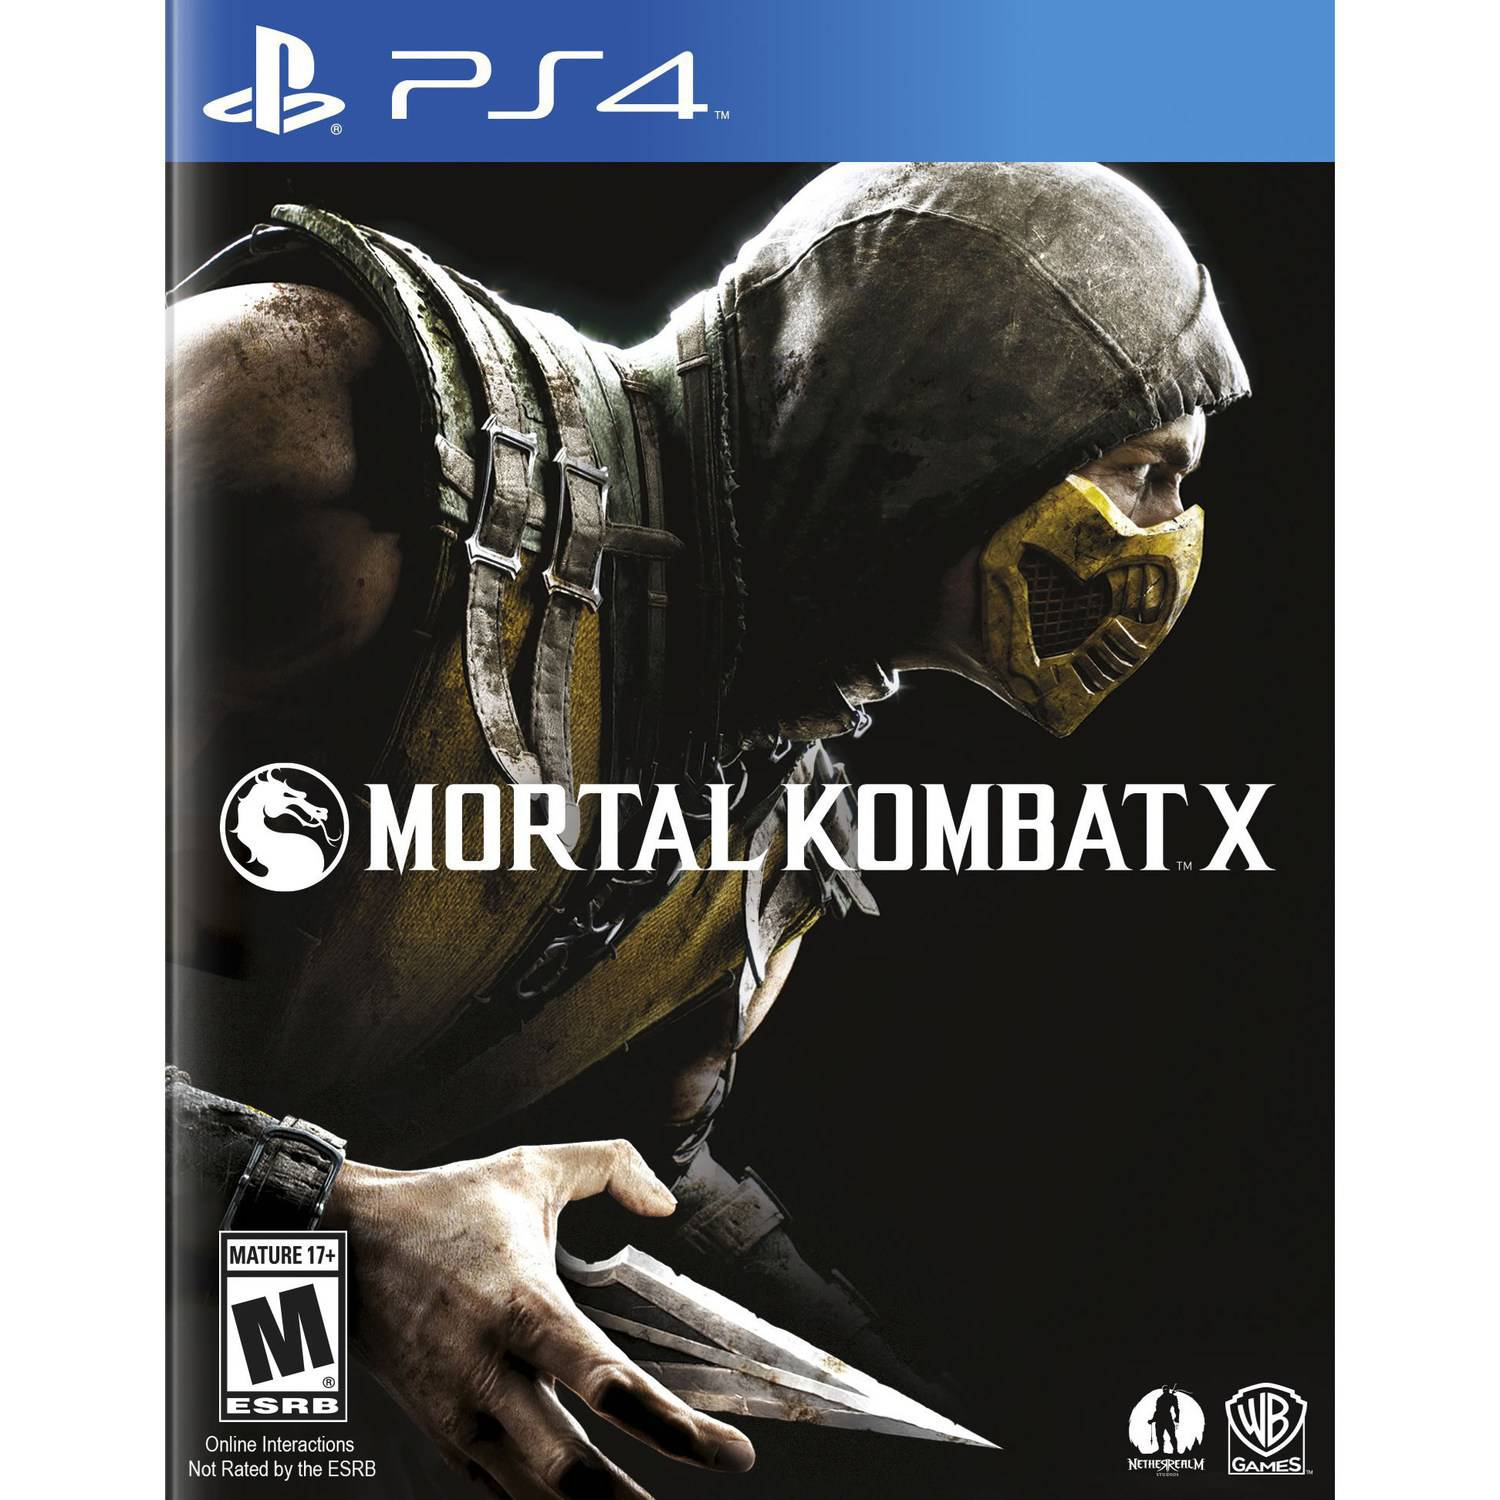 Mortal Kombat X (PS4) - Pre-Owned